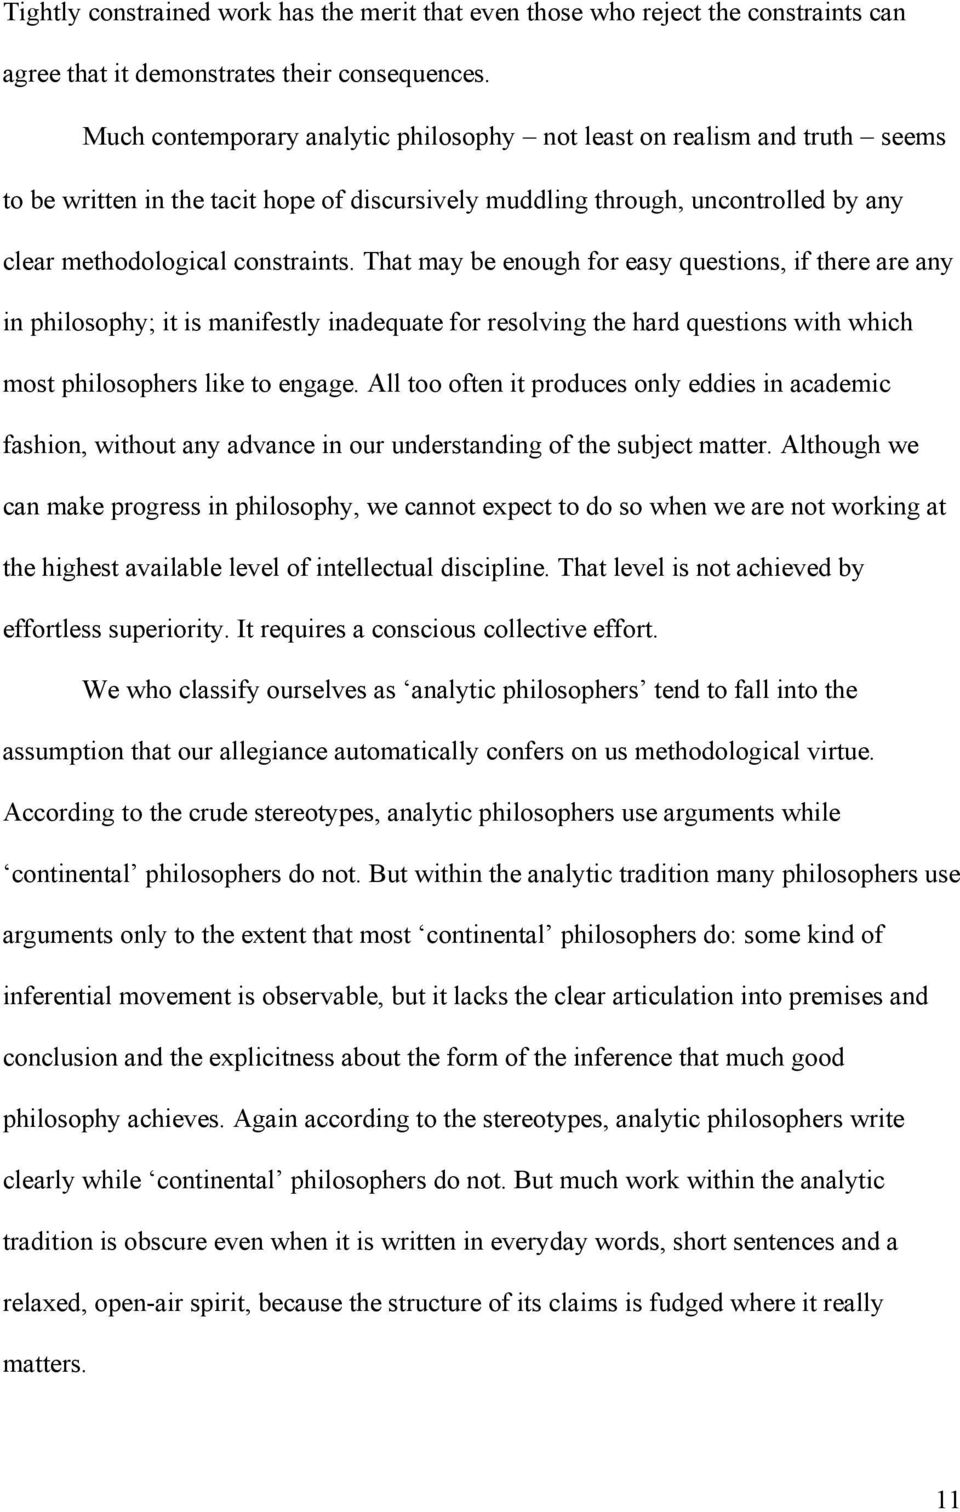 That may be enough for easy questions, if there are any in philosophy; it is manifestly inadequate for resolving the hard questions with which most philosophers like to engage.